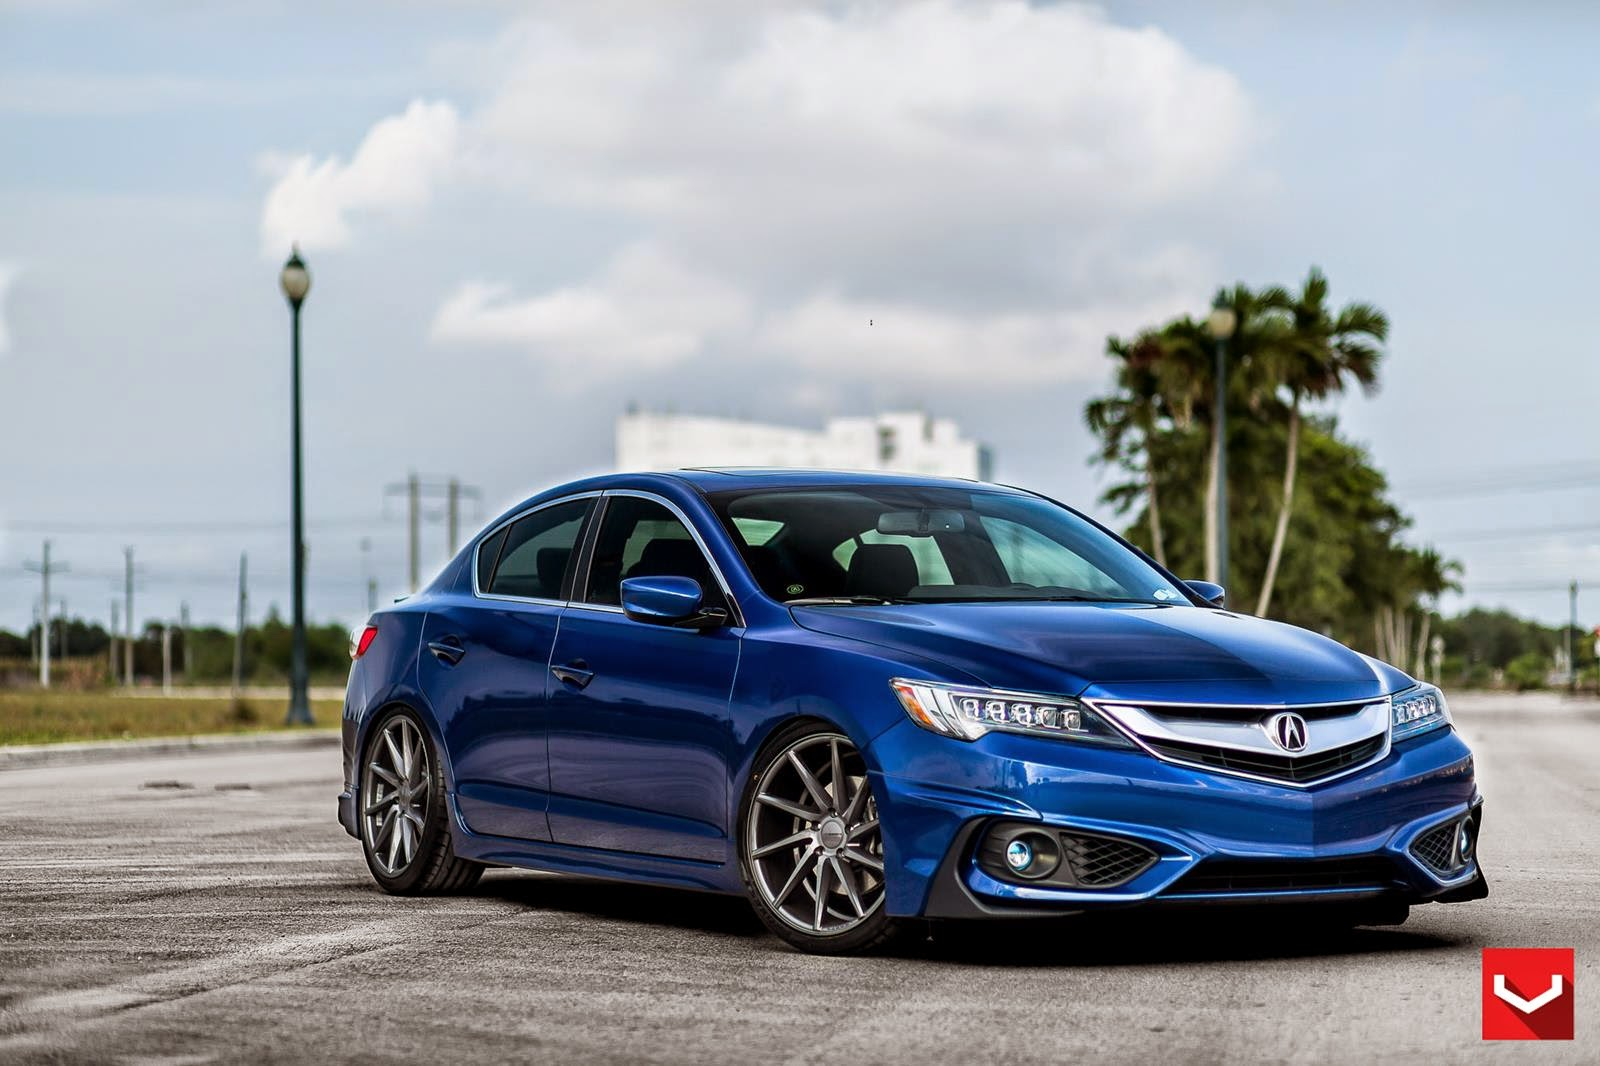 Acura-ILX-On-CVT-By-Vossen-Wheels-01.jpg